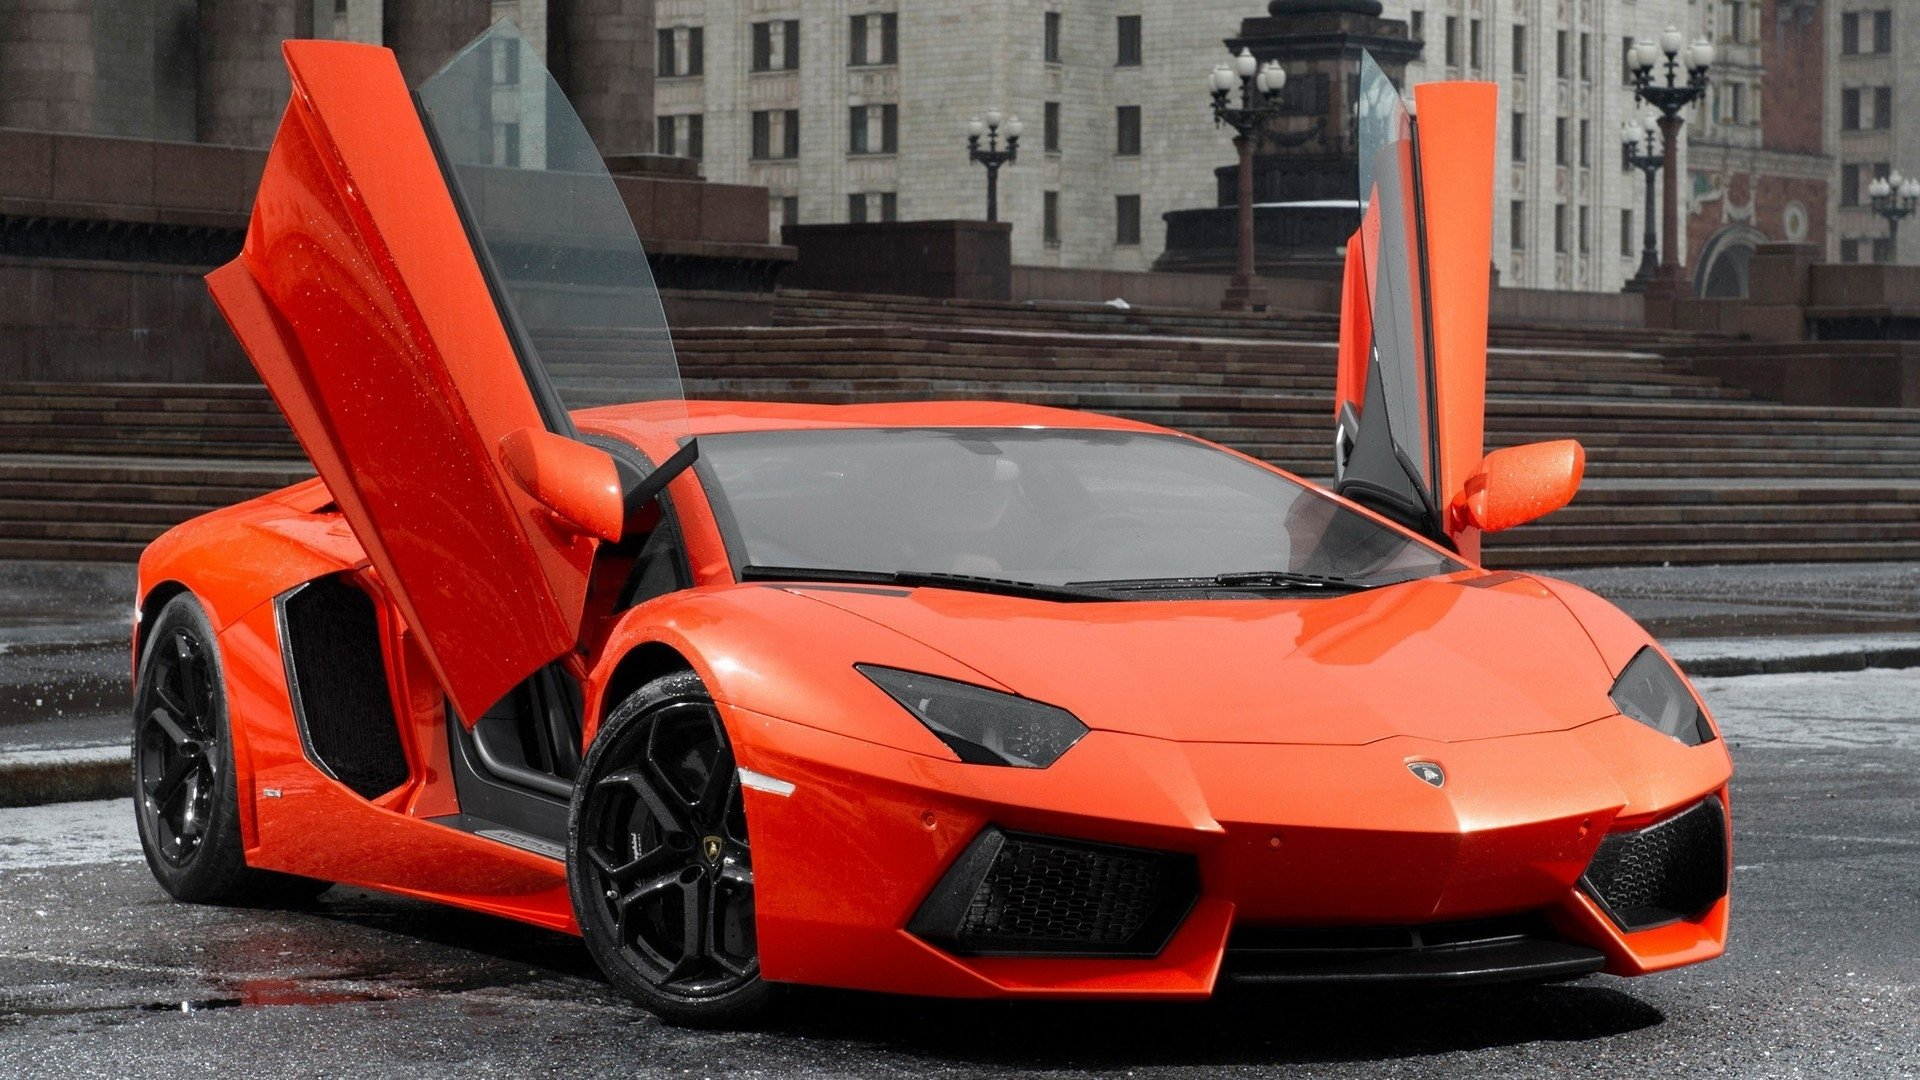 Lamborghini Aventador Wallpapers 1920x1080 Full Hd 1080p Desktop